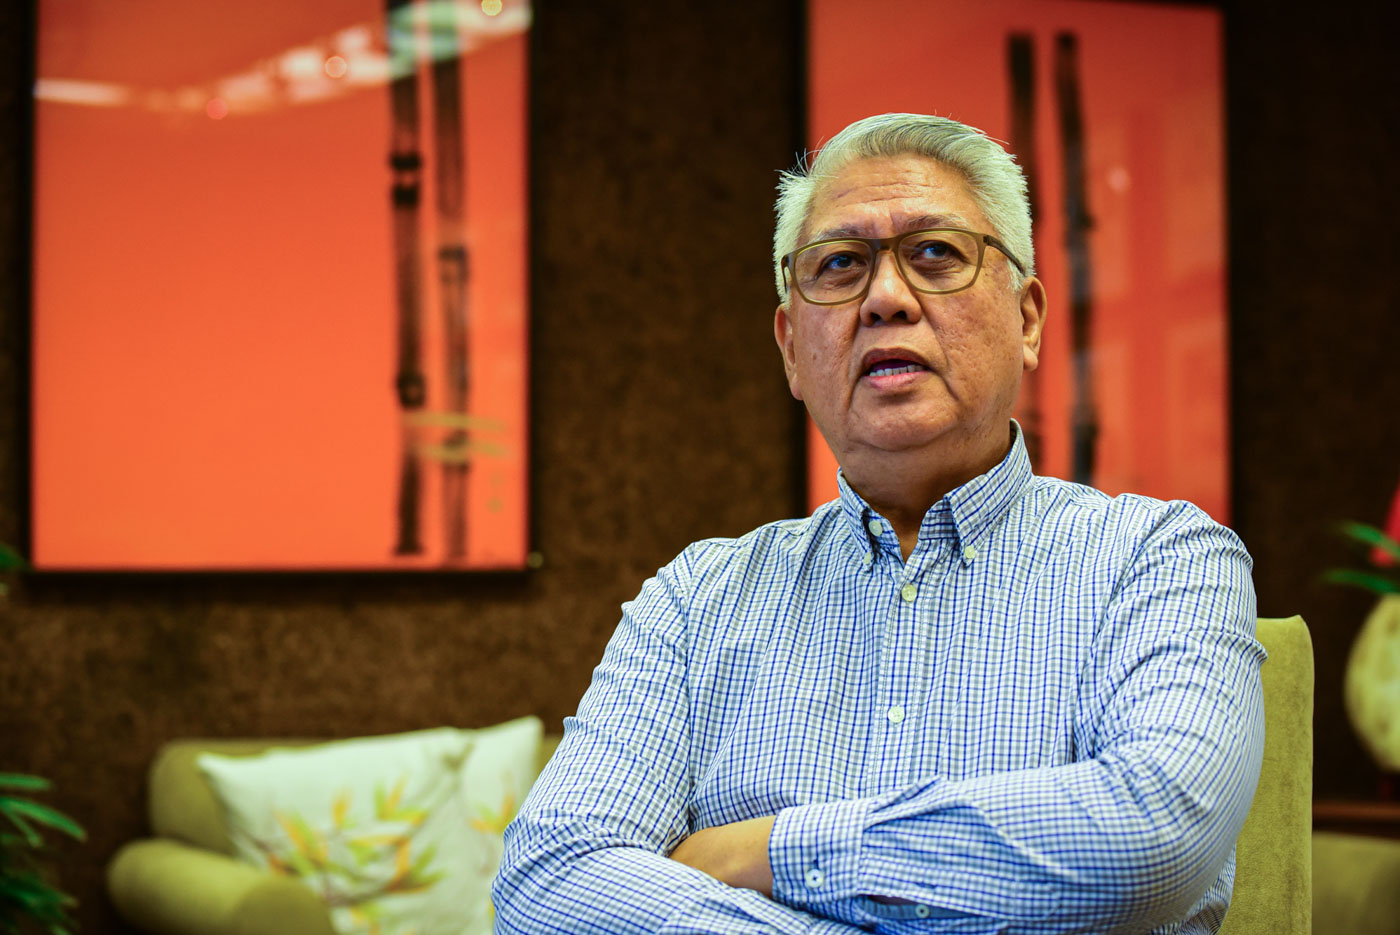 THE MAESTRO. Noe less than National Artist for Music and  2019 Ramon Magsaysay Awardee Ryan Cayabyab compose the new cheer for UP. File photo by Maria Tan/Rappler